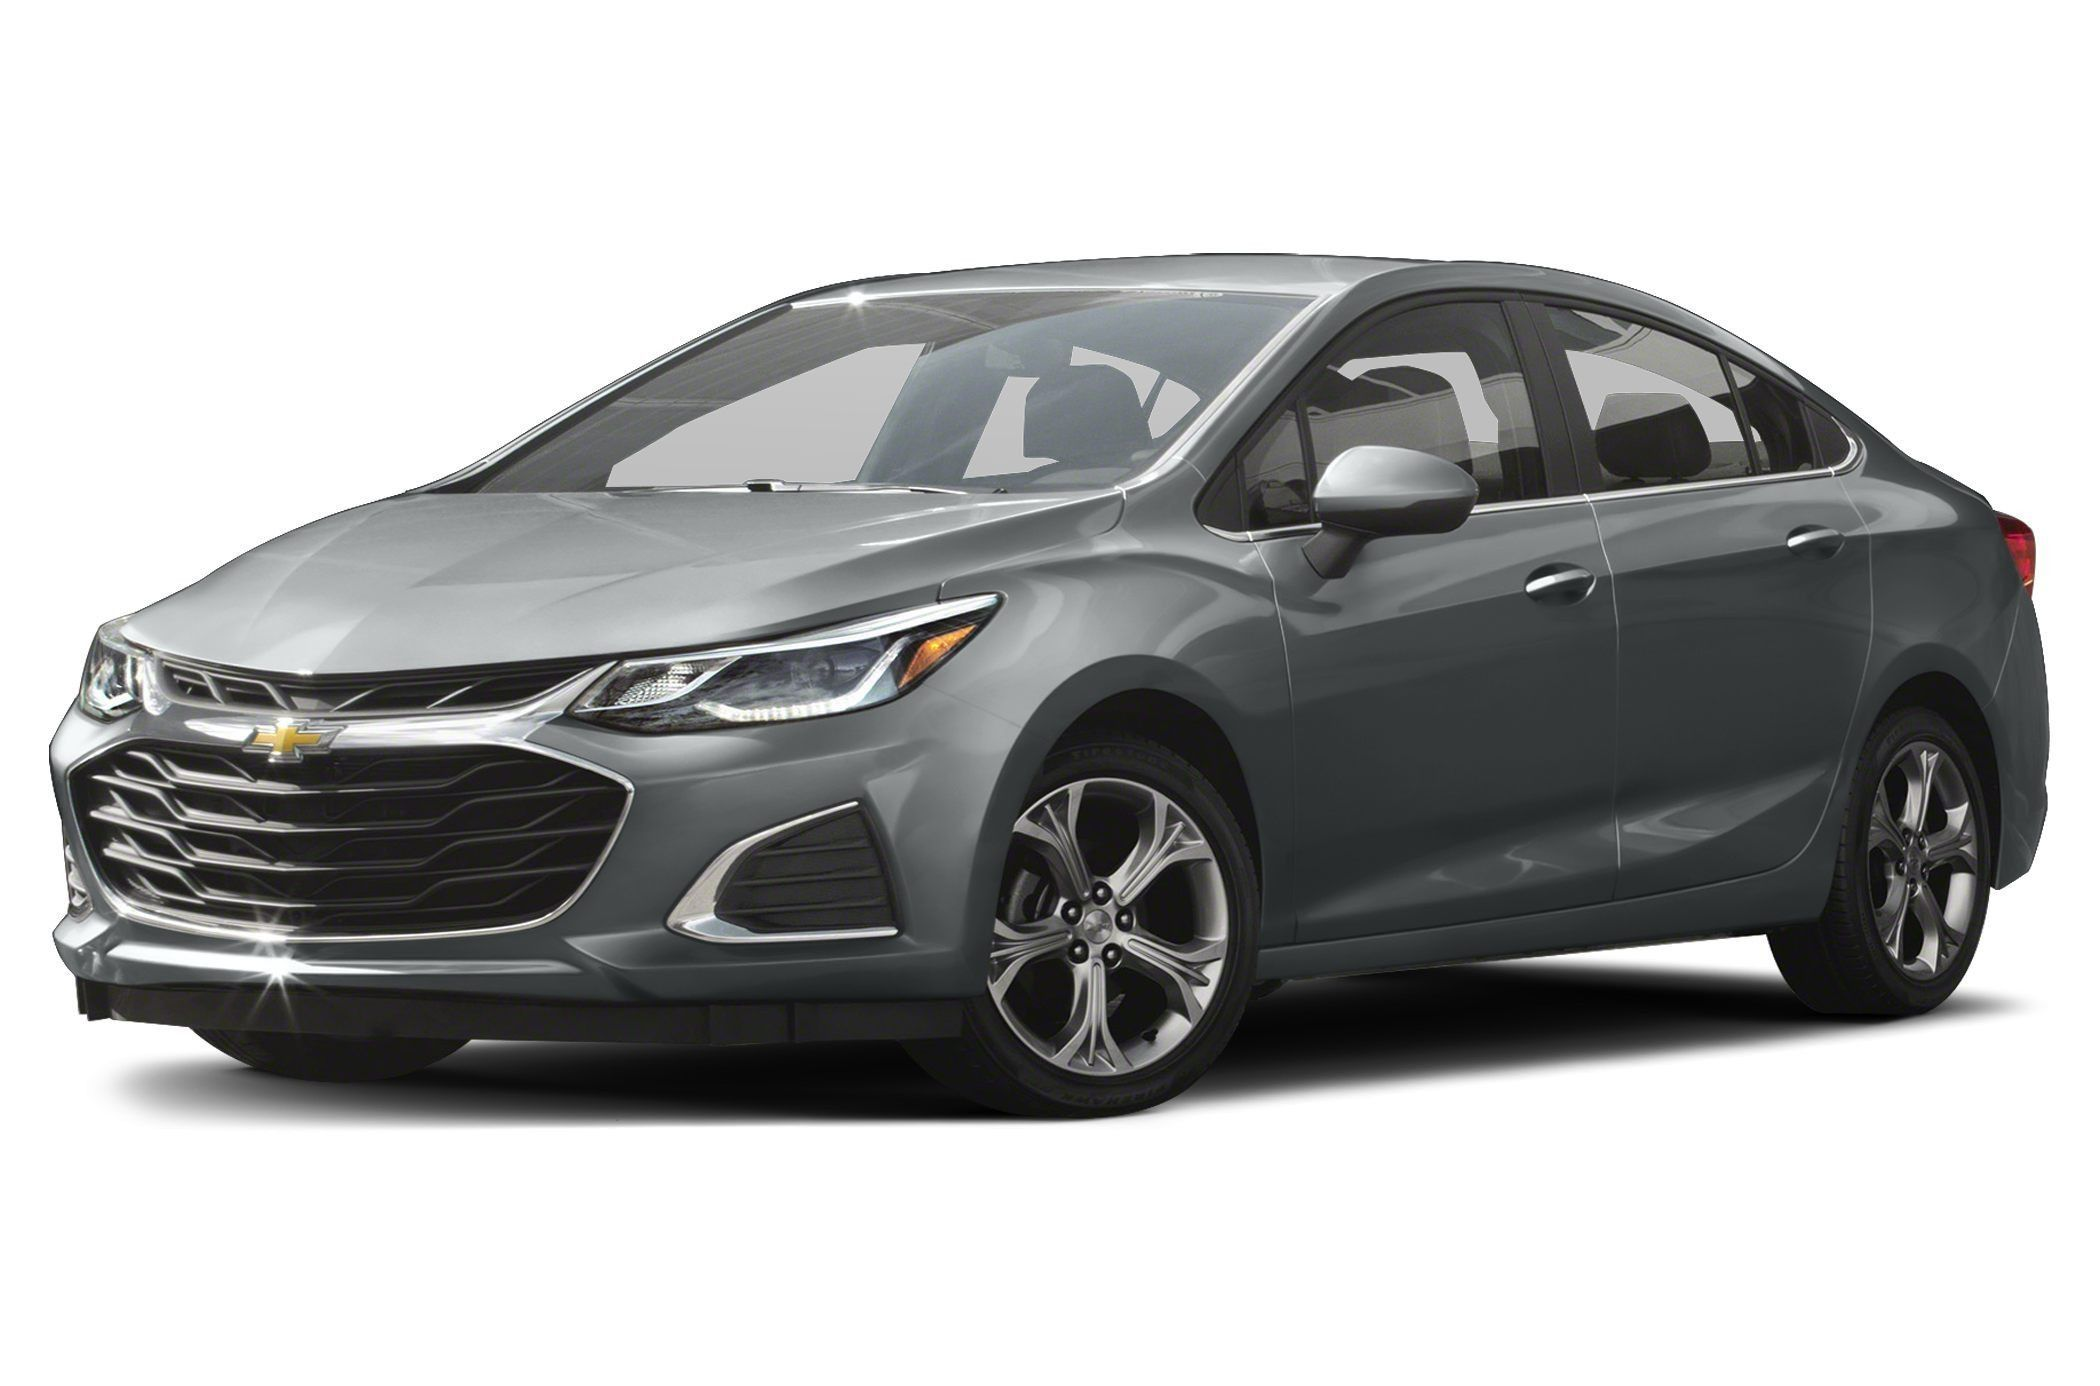 Chevy Cruze 2020 Review.2020 Chevrolet Cruze First Drive Price Performance And